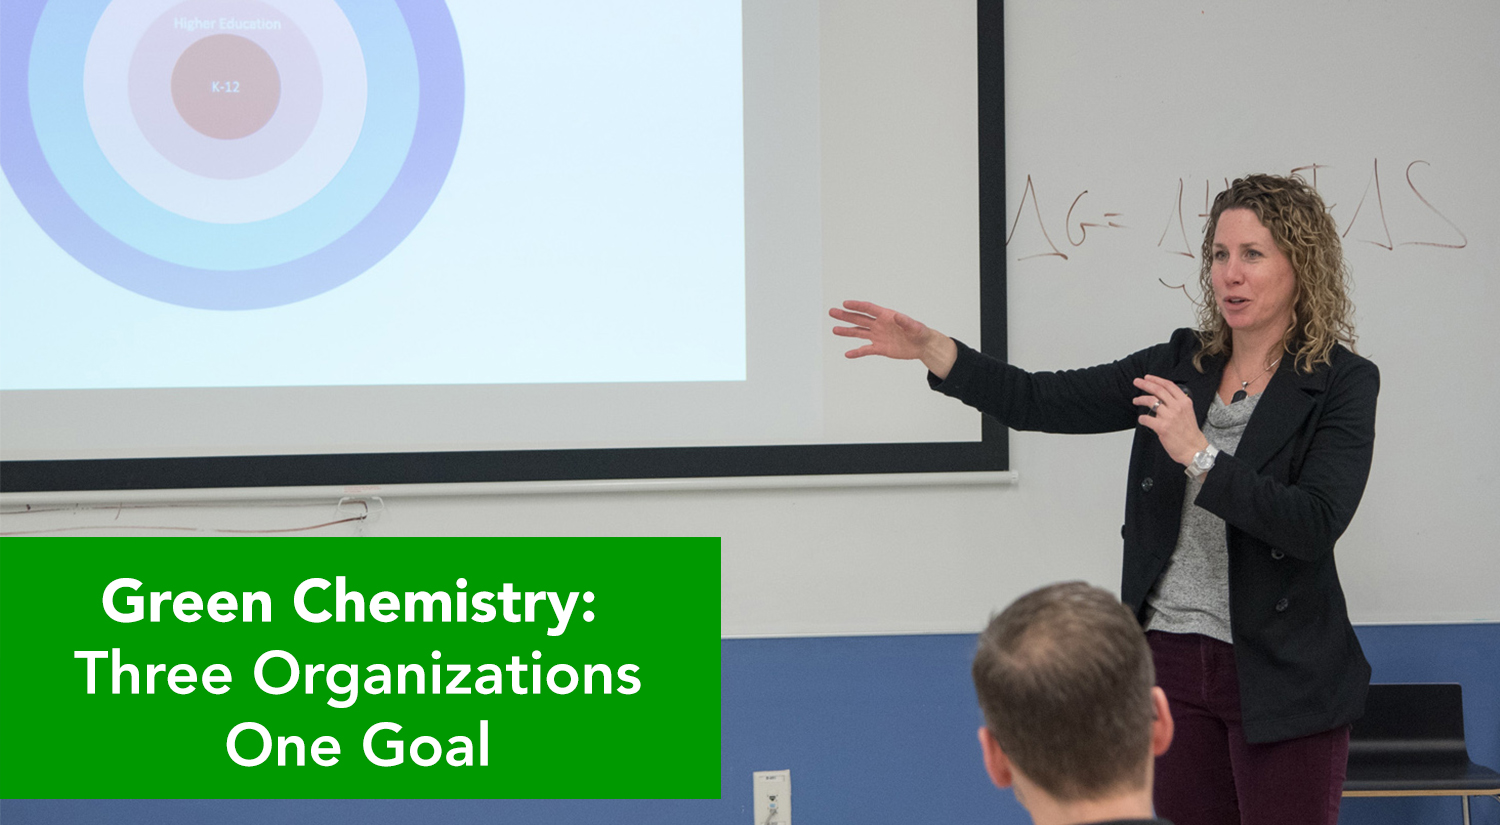 Amy Cannon - Green Chemistry: Three Organizations, One Goal